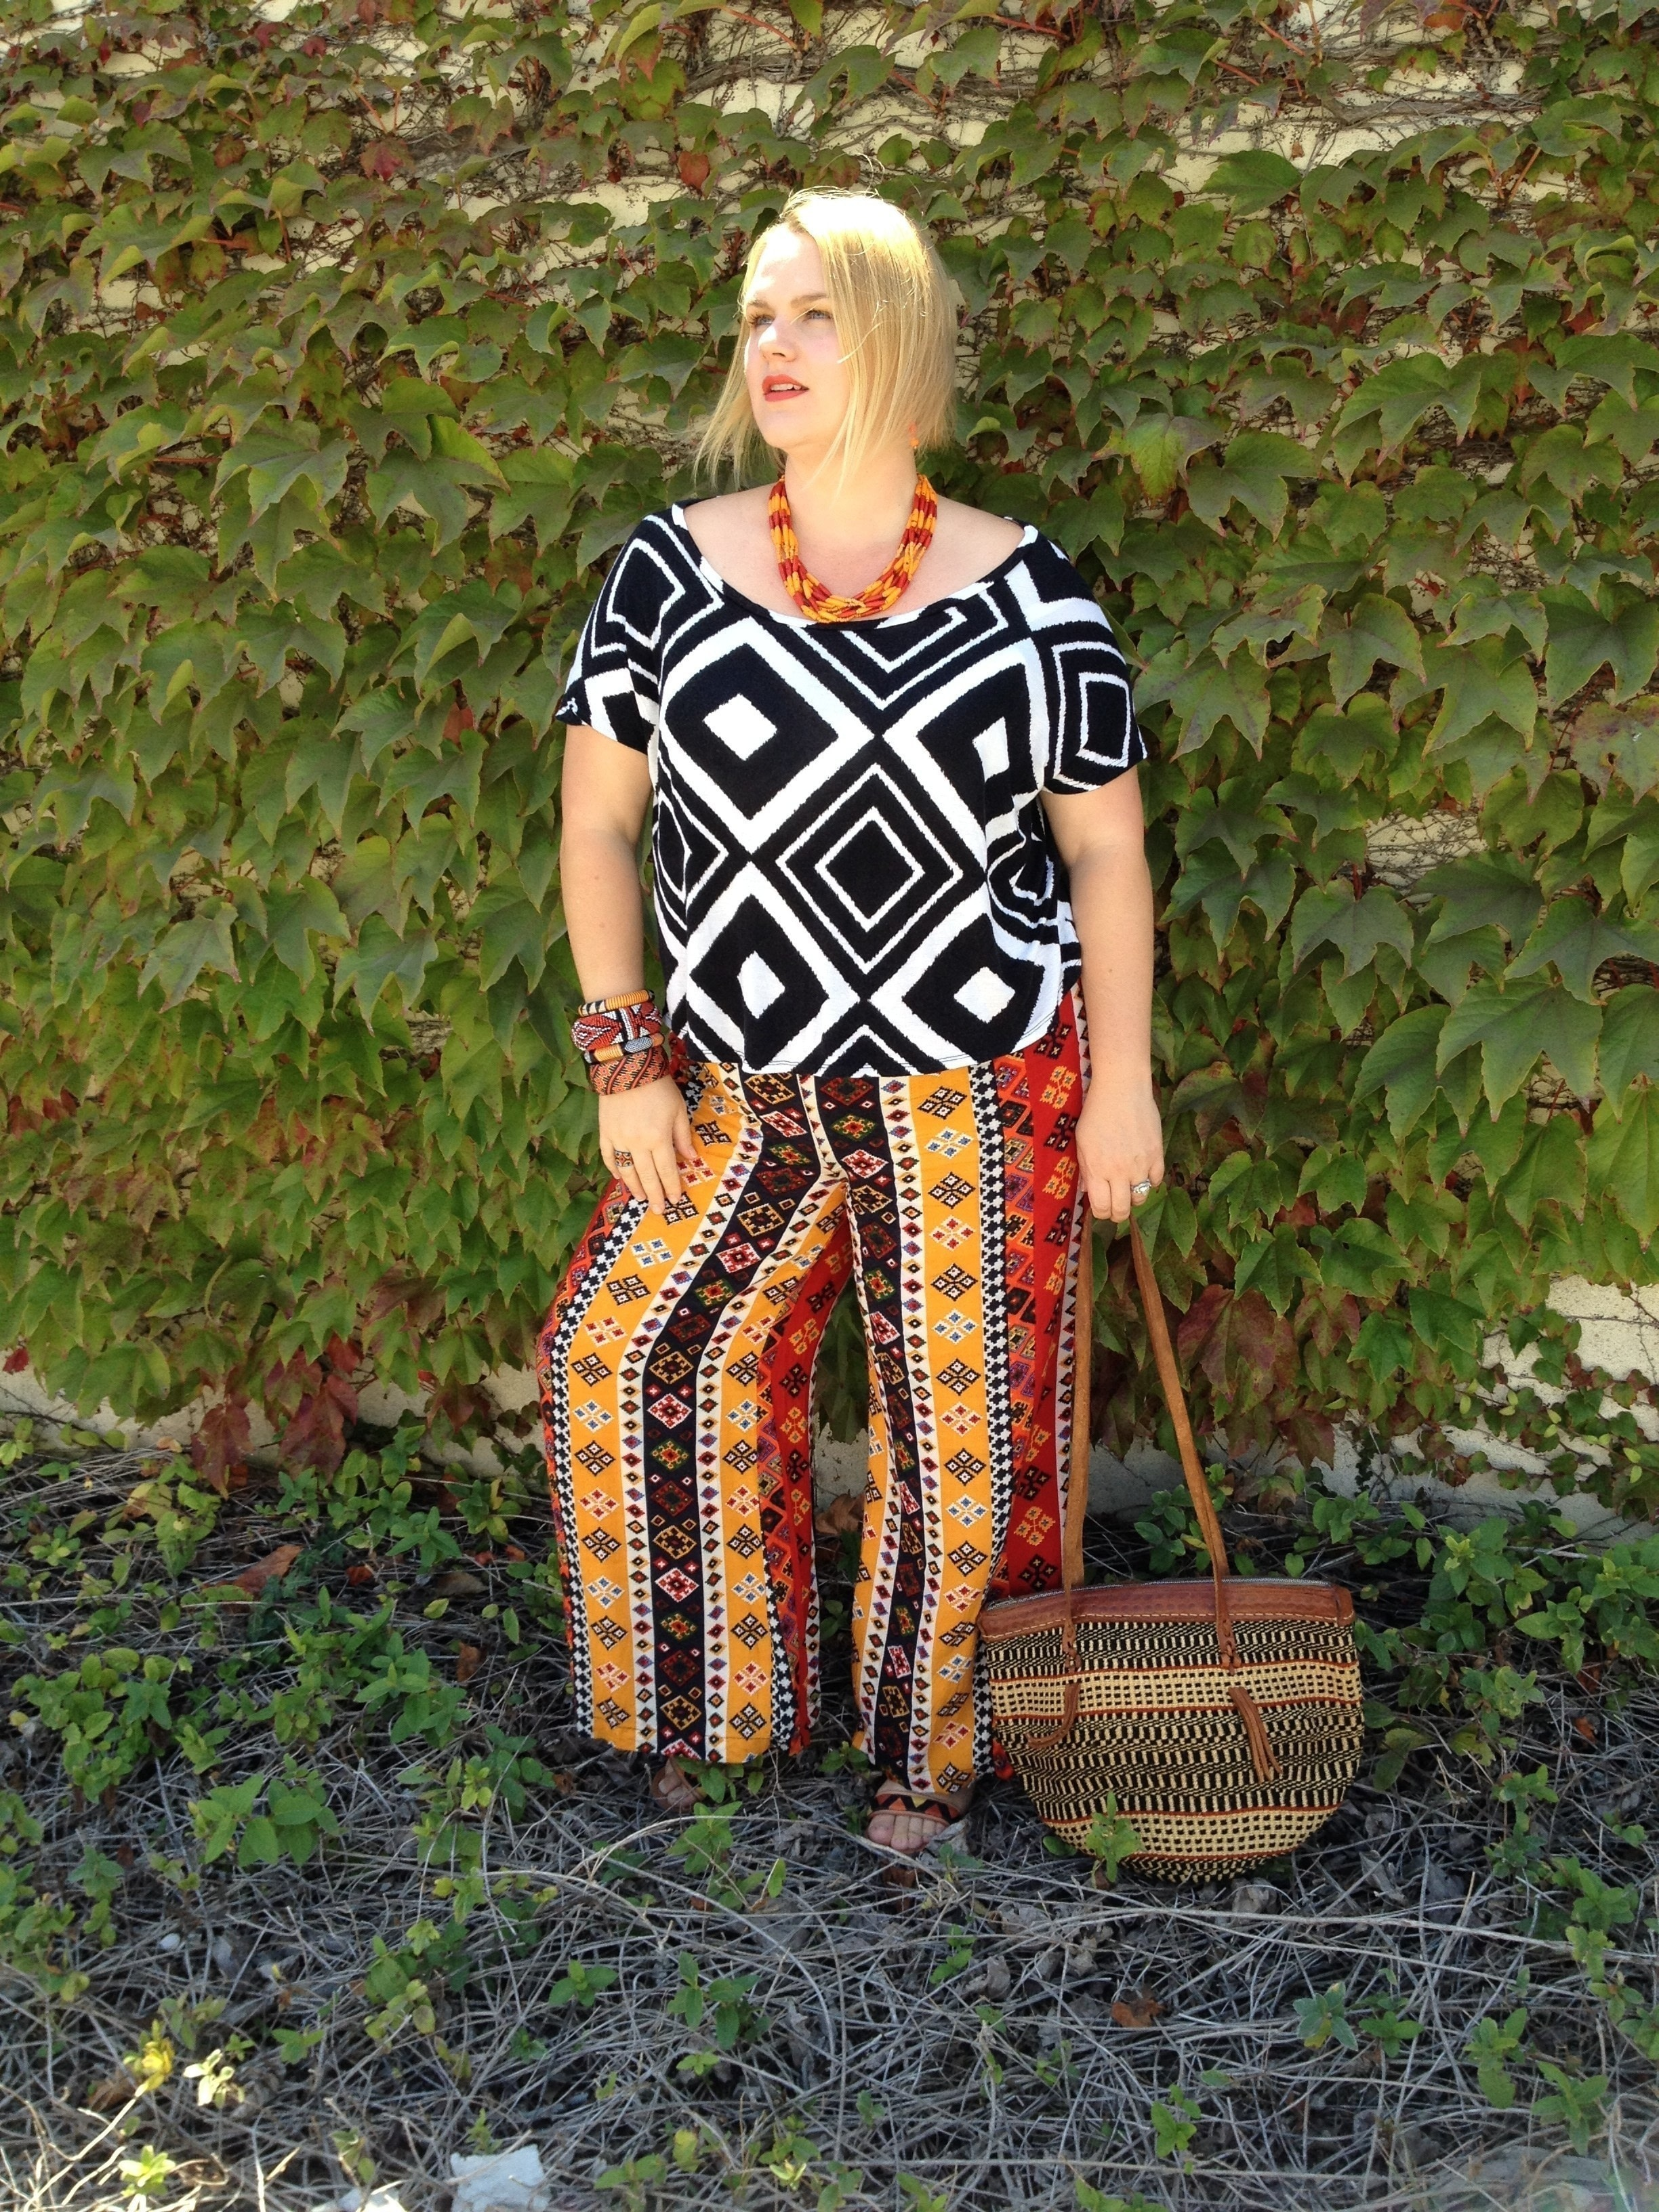 Favorite Books List: Guide To Wearing Mixed Prints · How To Make A Piece Of